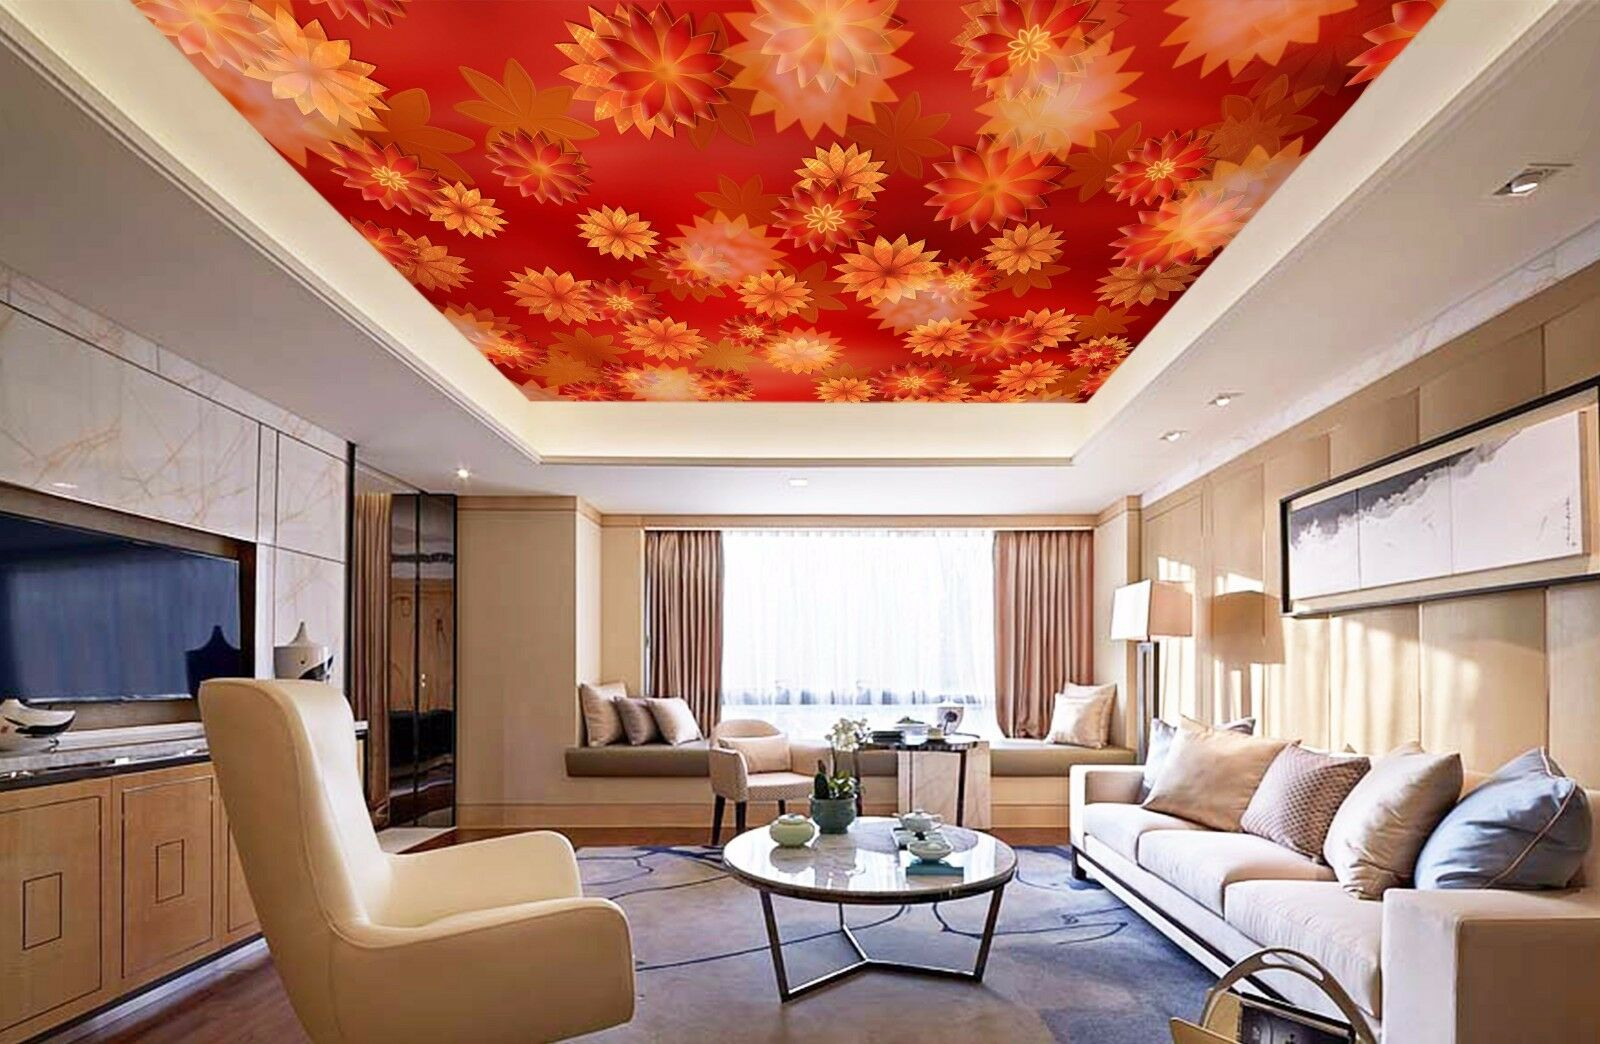 3D Cute Red Petals 8 Ceiling WallPaper Murals Wall Print Decal Deco AJ WALLPAPER